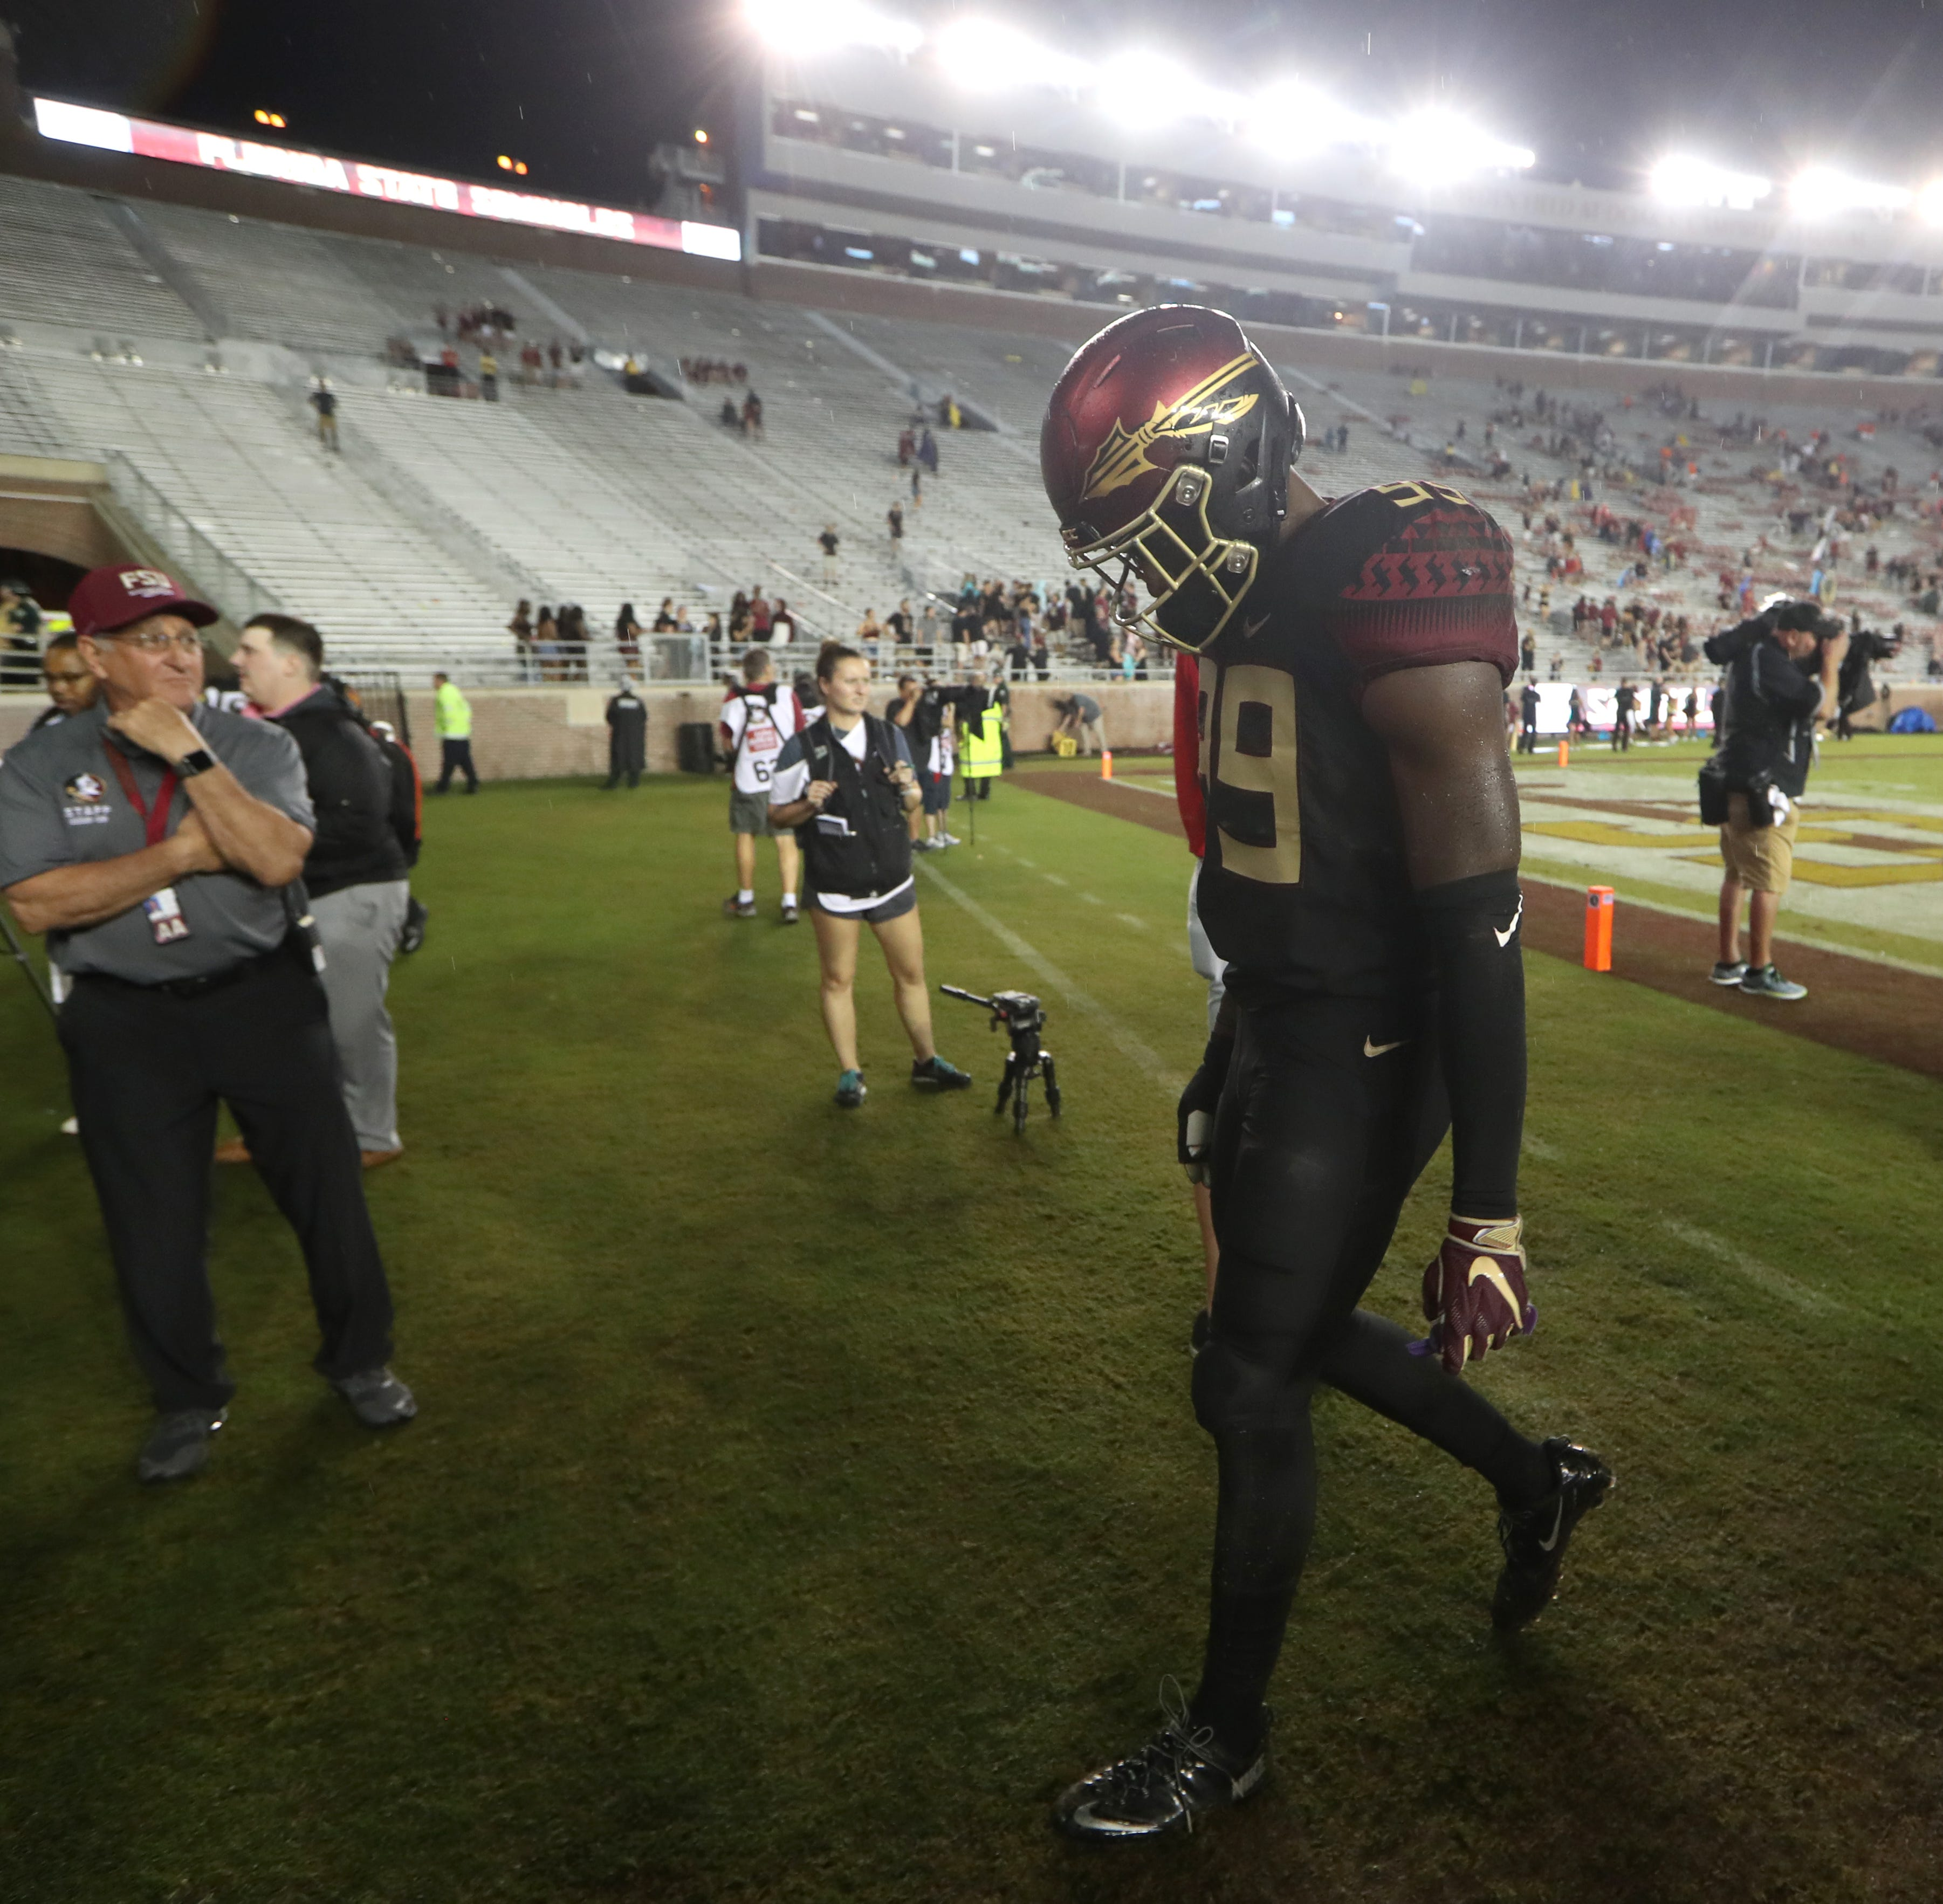 The psychology of loss and football: How to cope with the struggling Seminoles